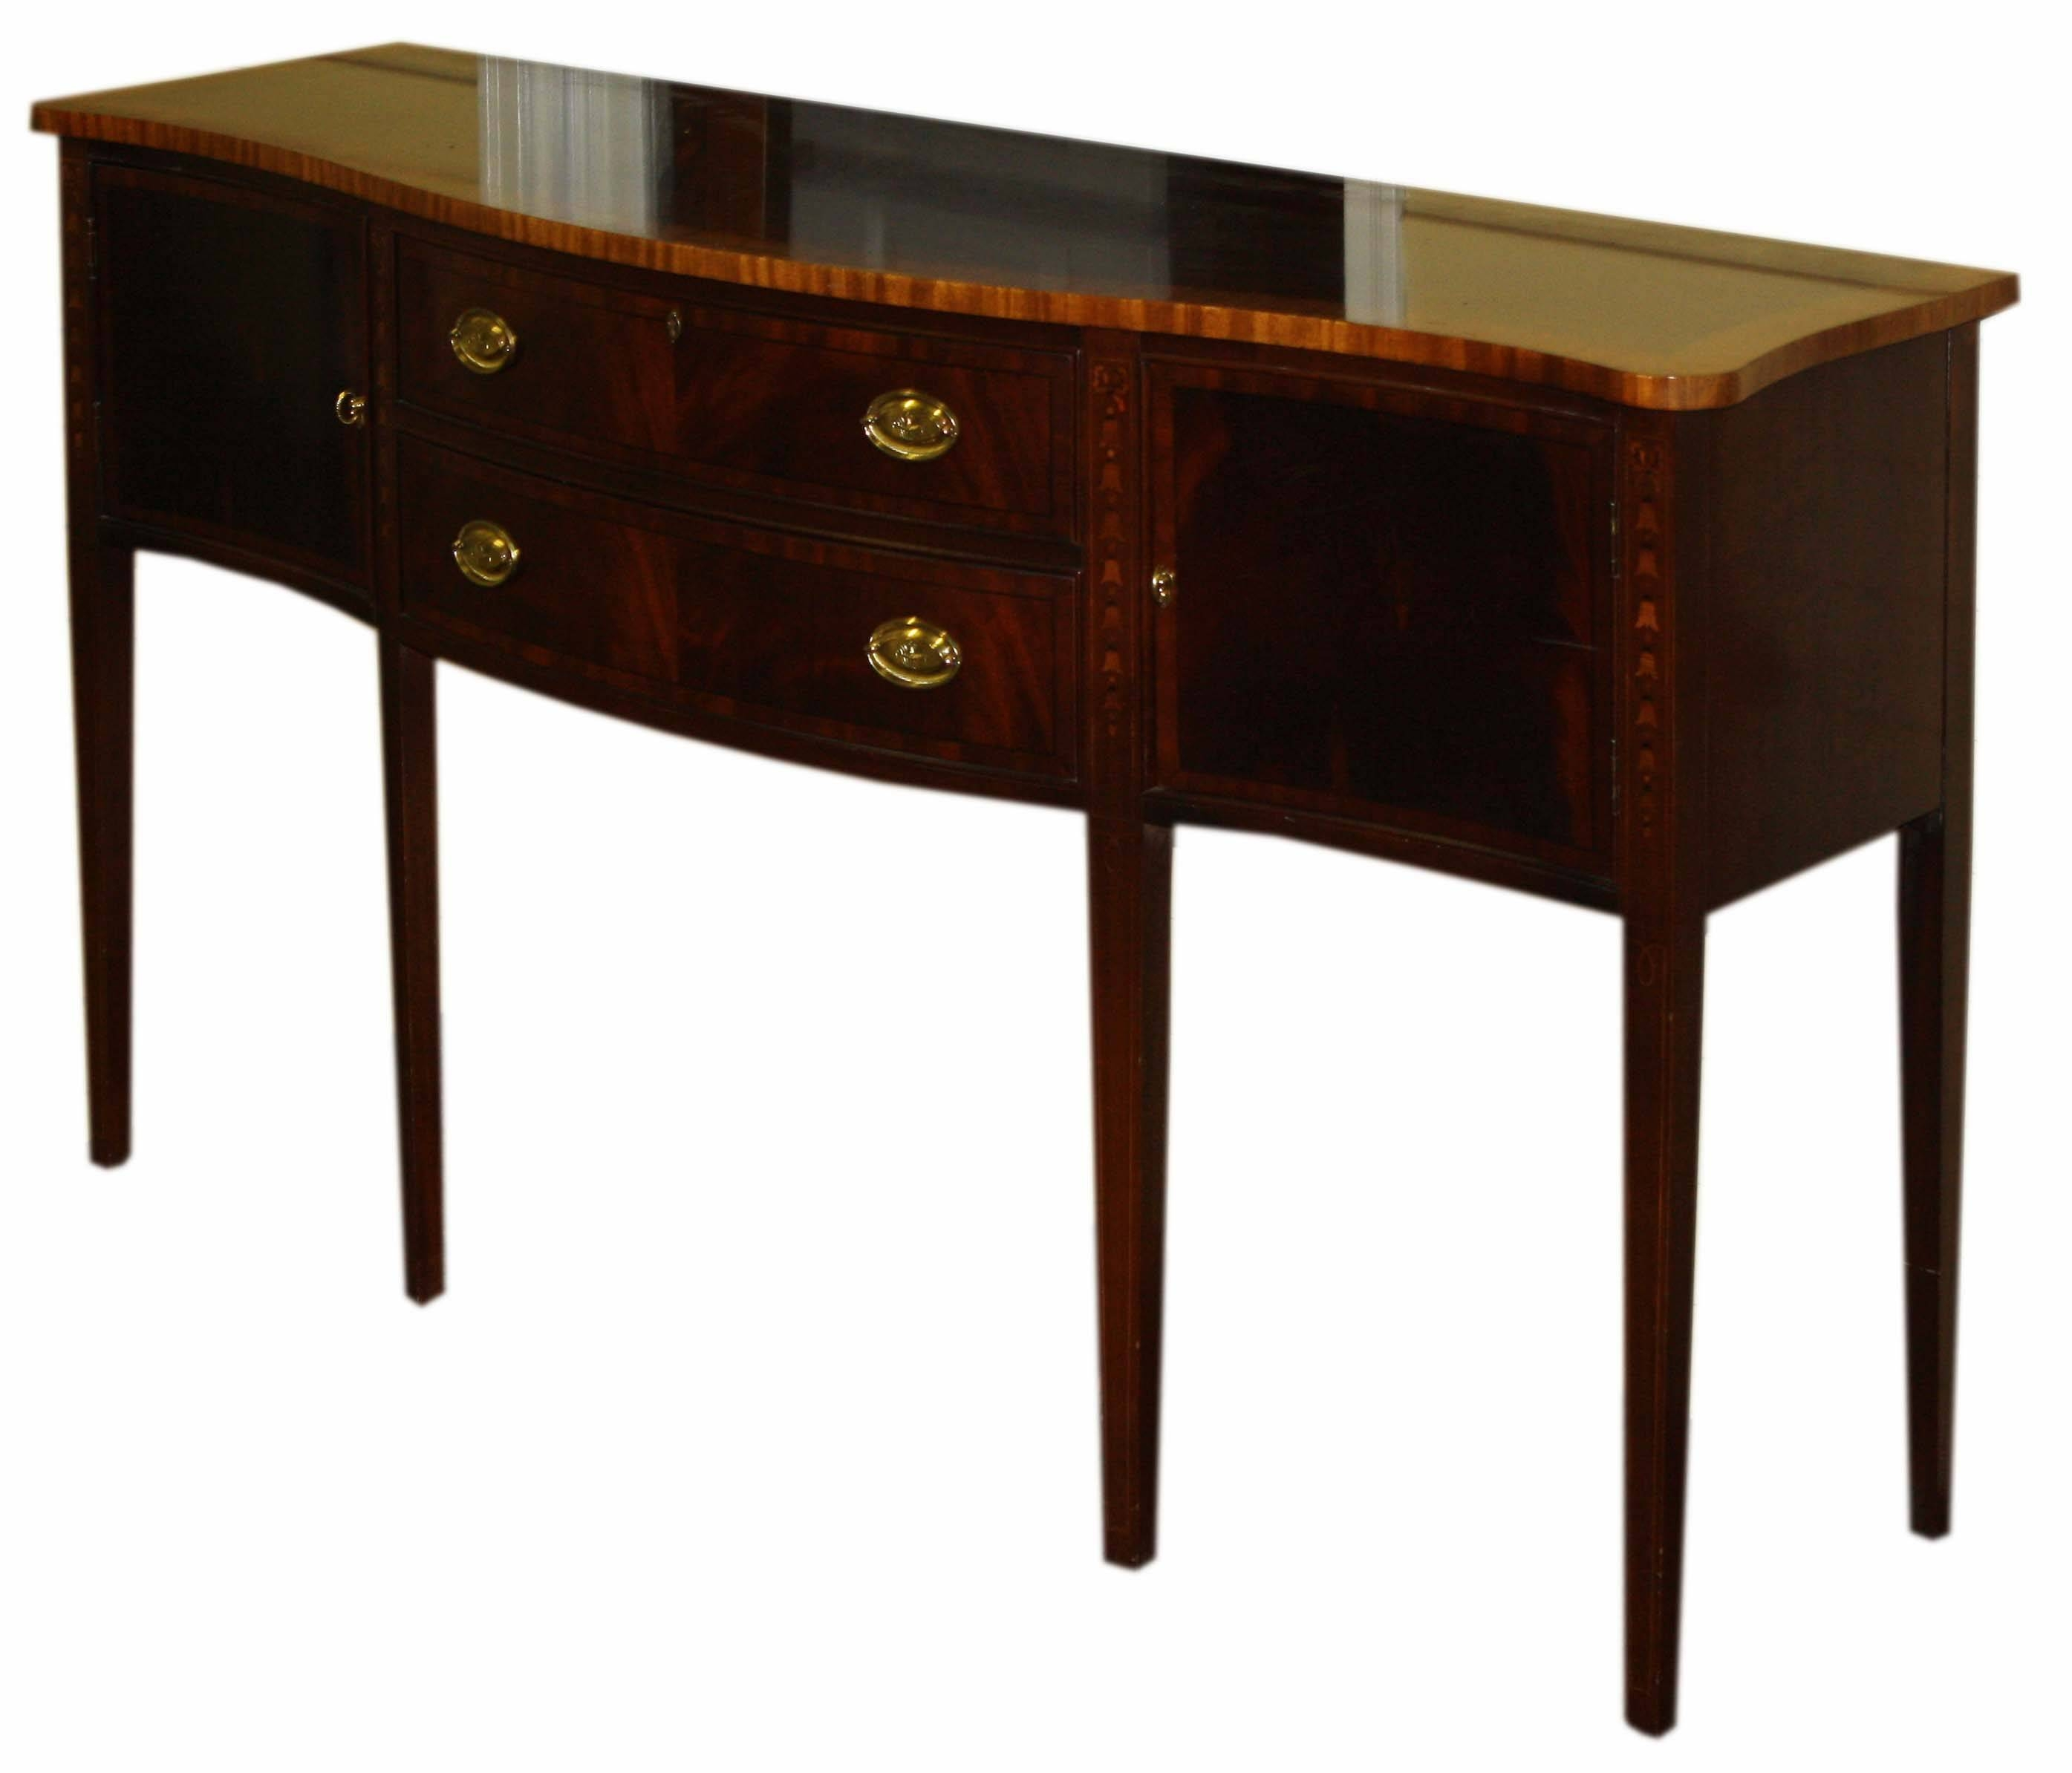 Ethan Allen Hepplewhite Mahogany Sideboard | Merrill's Auction For Most Recent Ethan Allen Sideboards (#4 of 15)